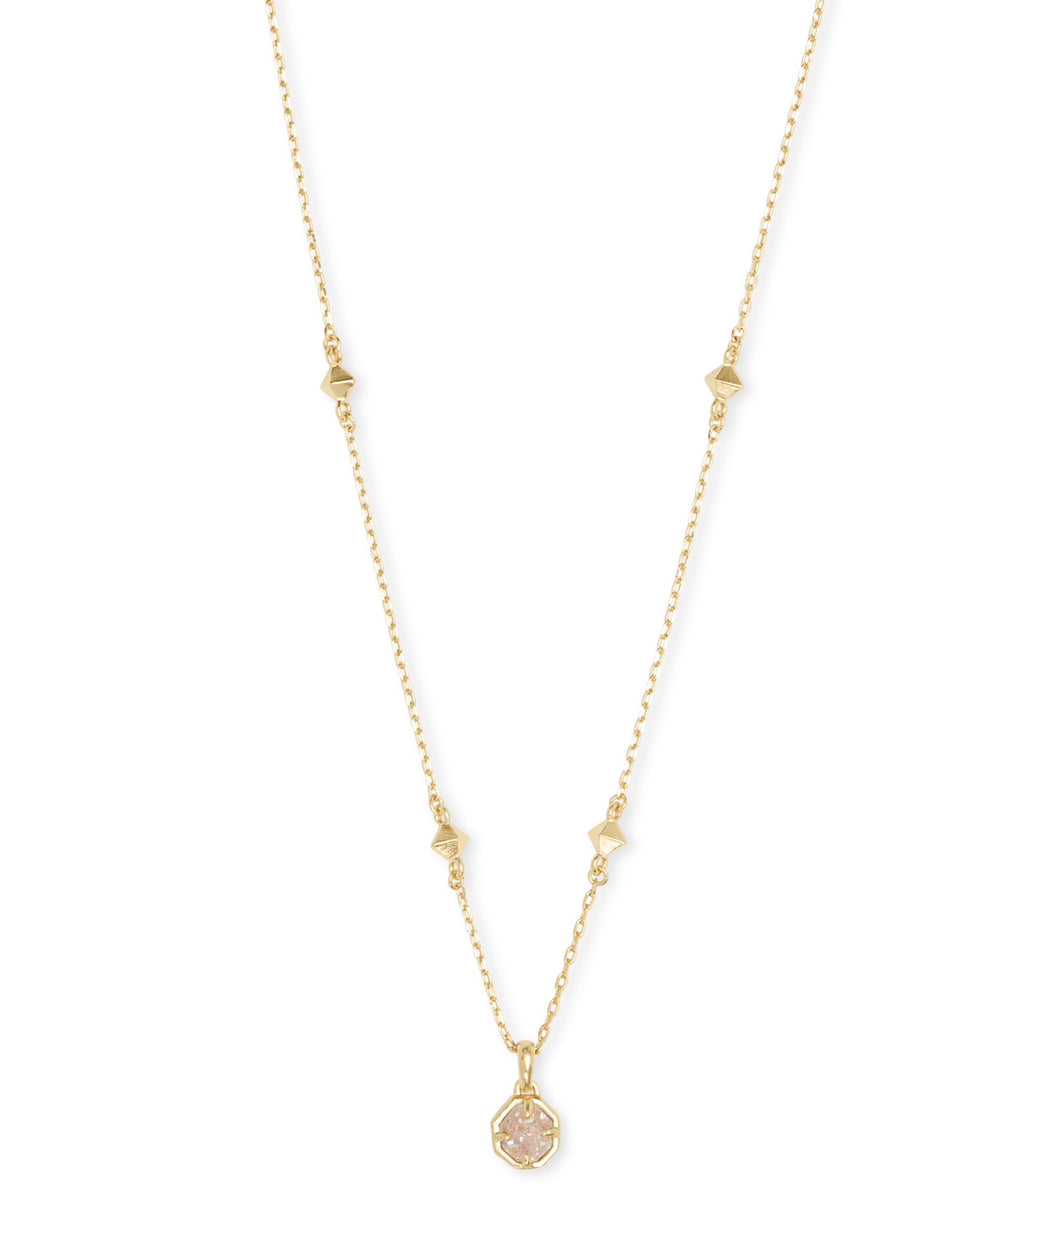 Kendra Scott: Nola Short Gold Iridescent Drusy Necklace - The Vogue Boutique